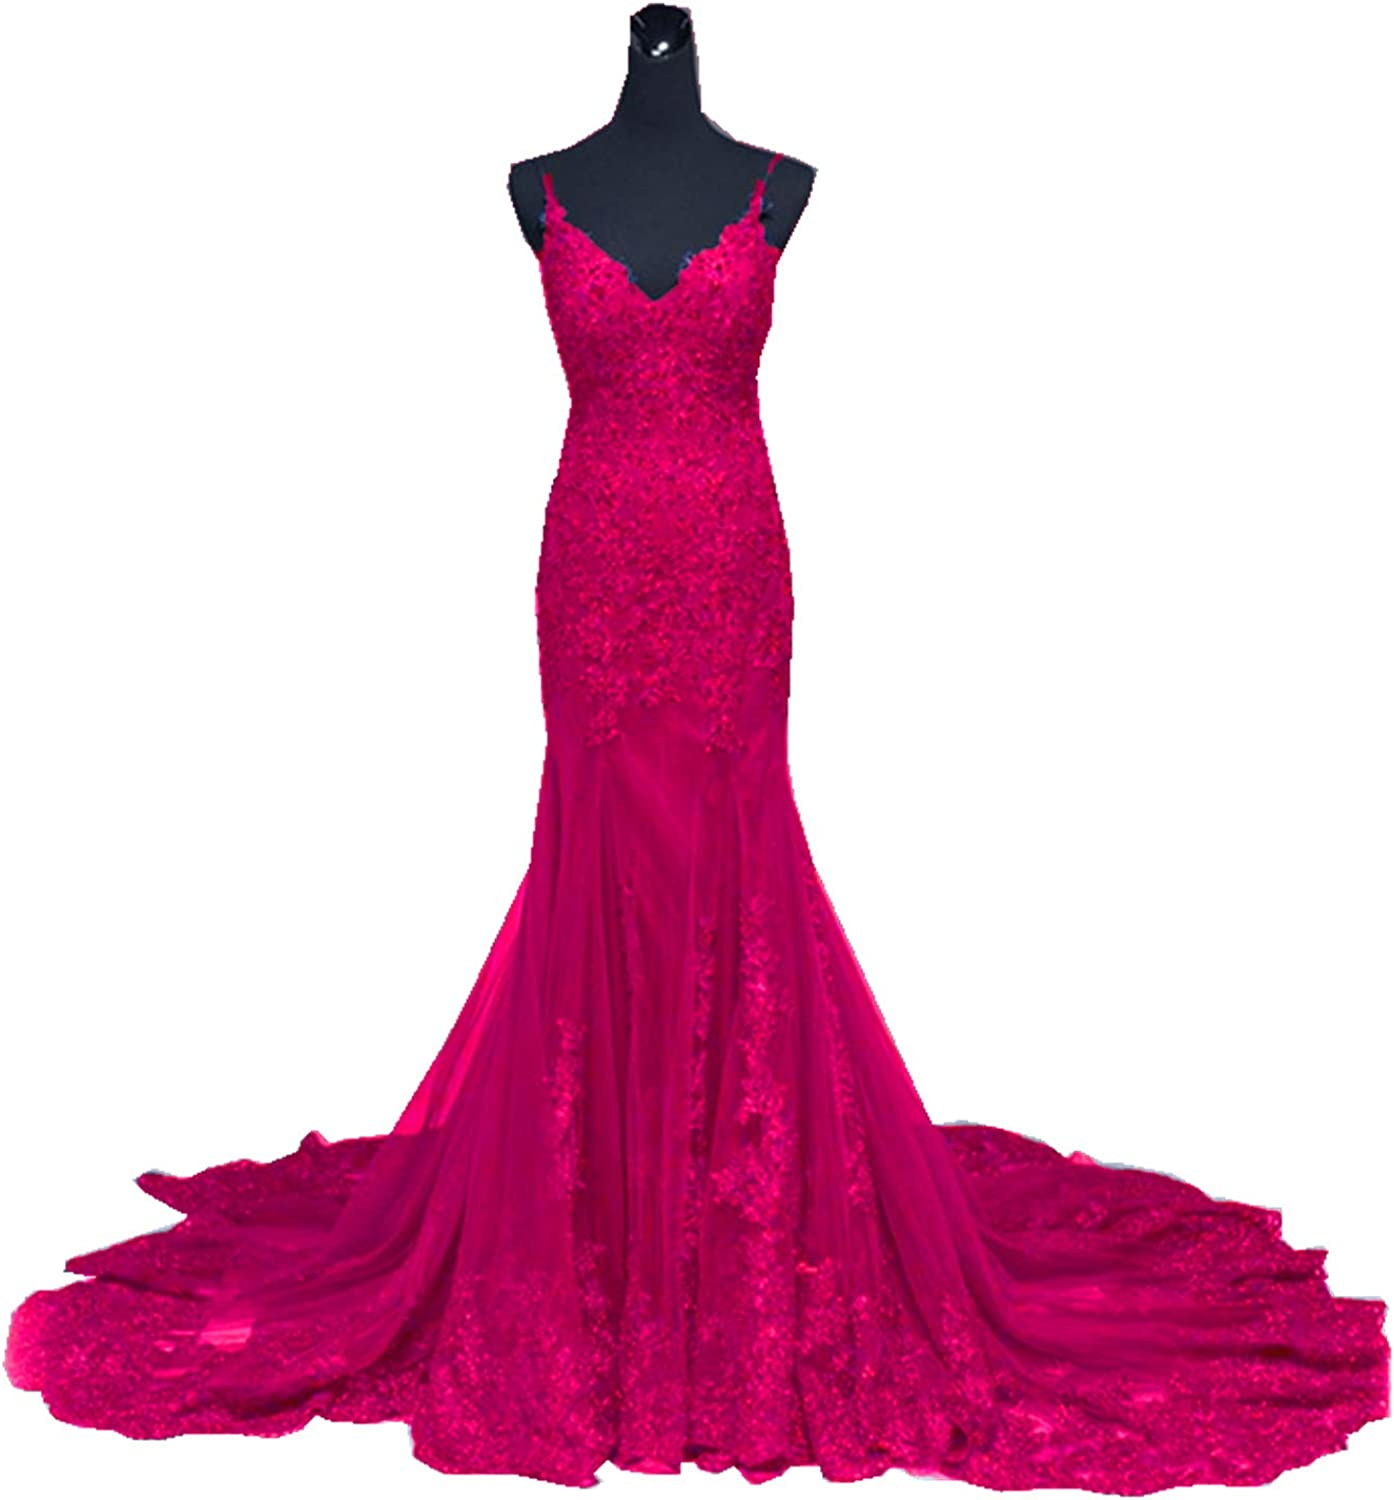 Ruiyuhong Women's Lace Mermaid Evening Dresses Spaghetti Wedding Party Gown with Train